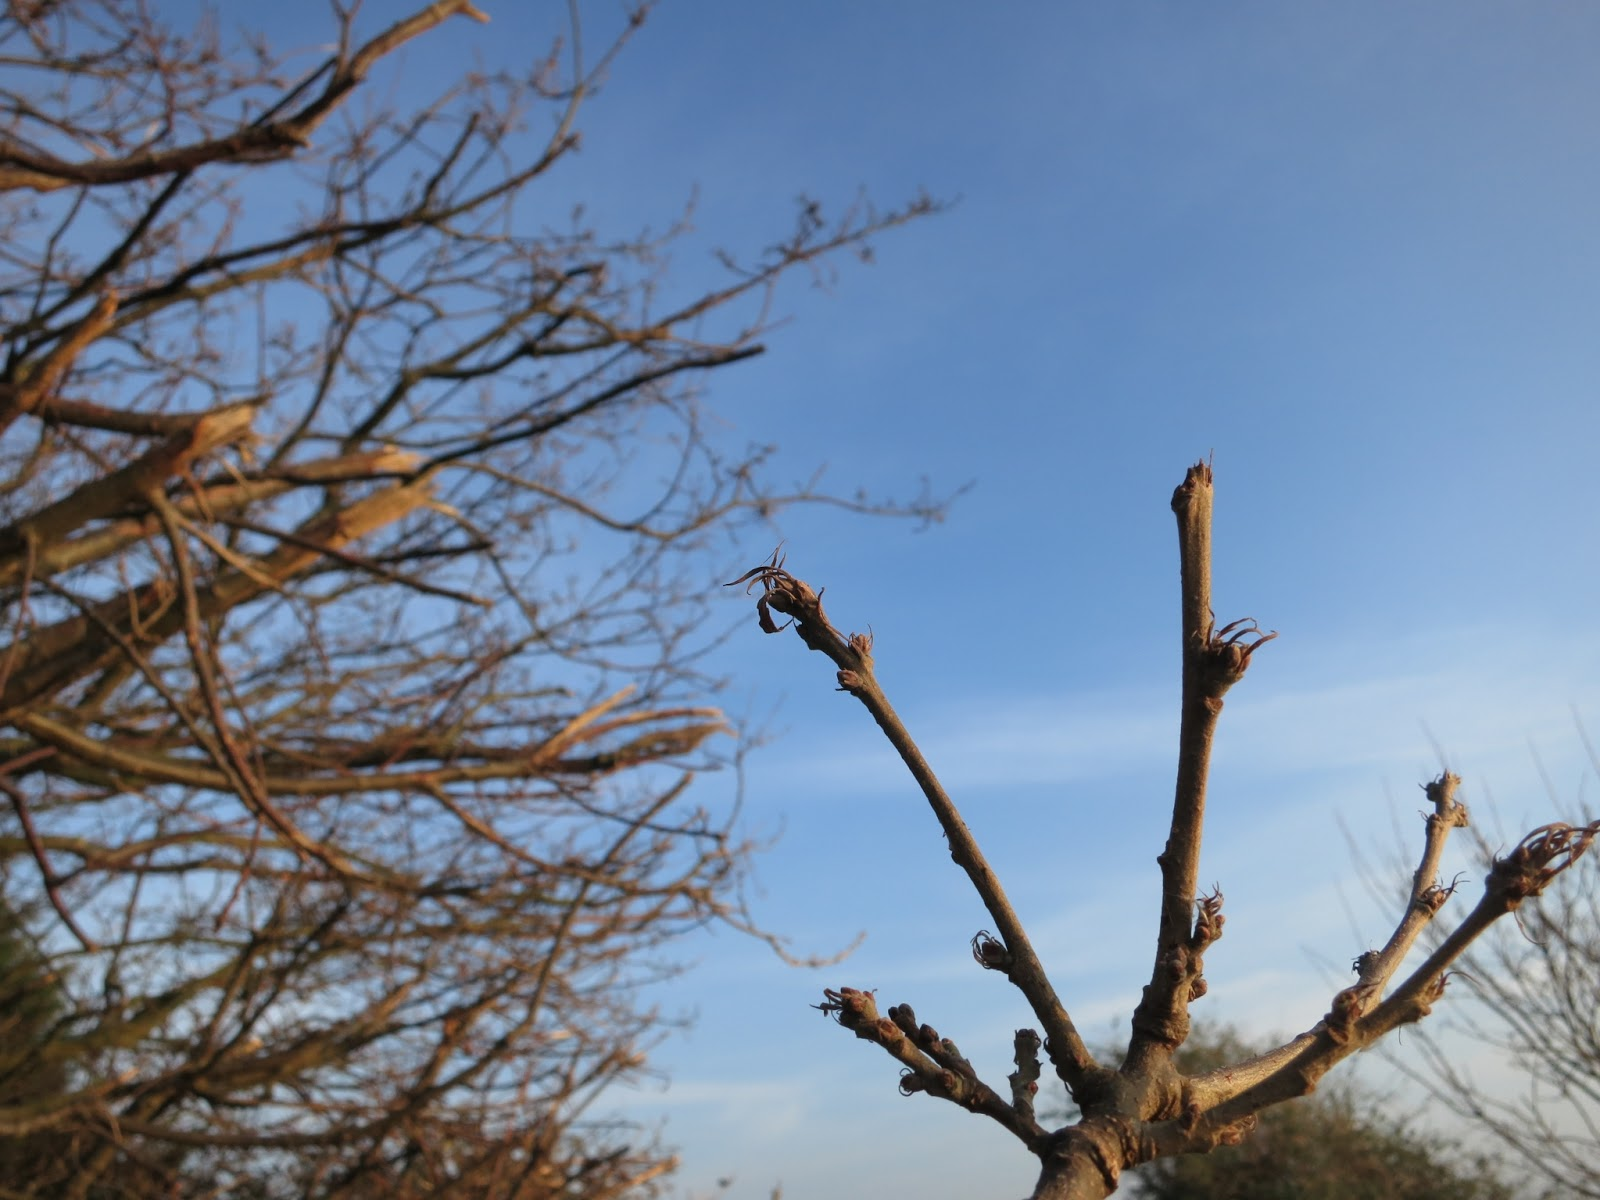 Turkey oak buds on trigs showing twirly bits.